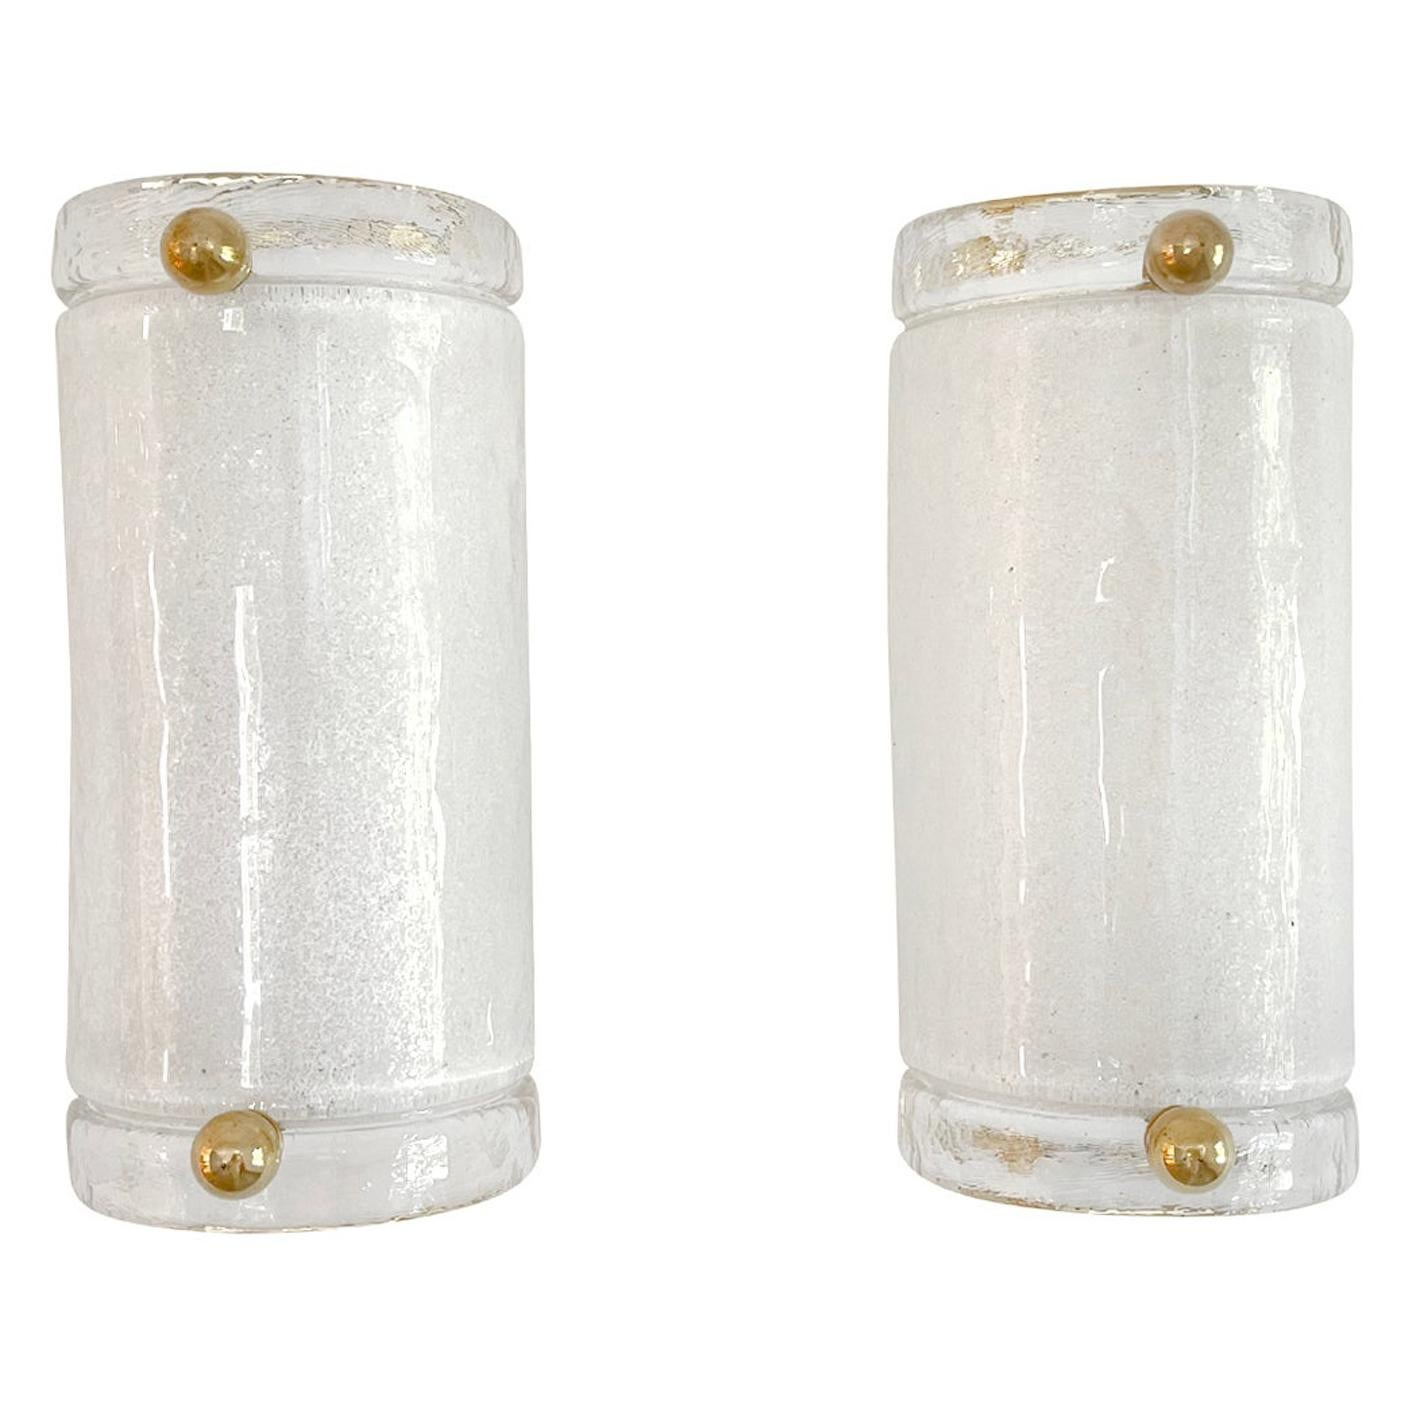 20th Century Italian Pair of Small Murano Glass Sommerso Wall Sconces